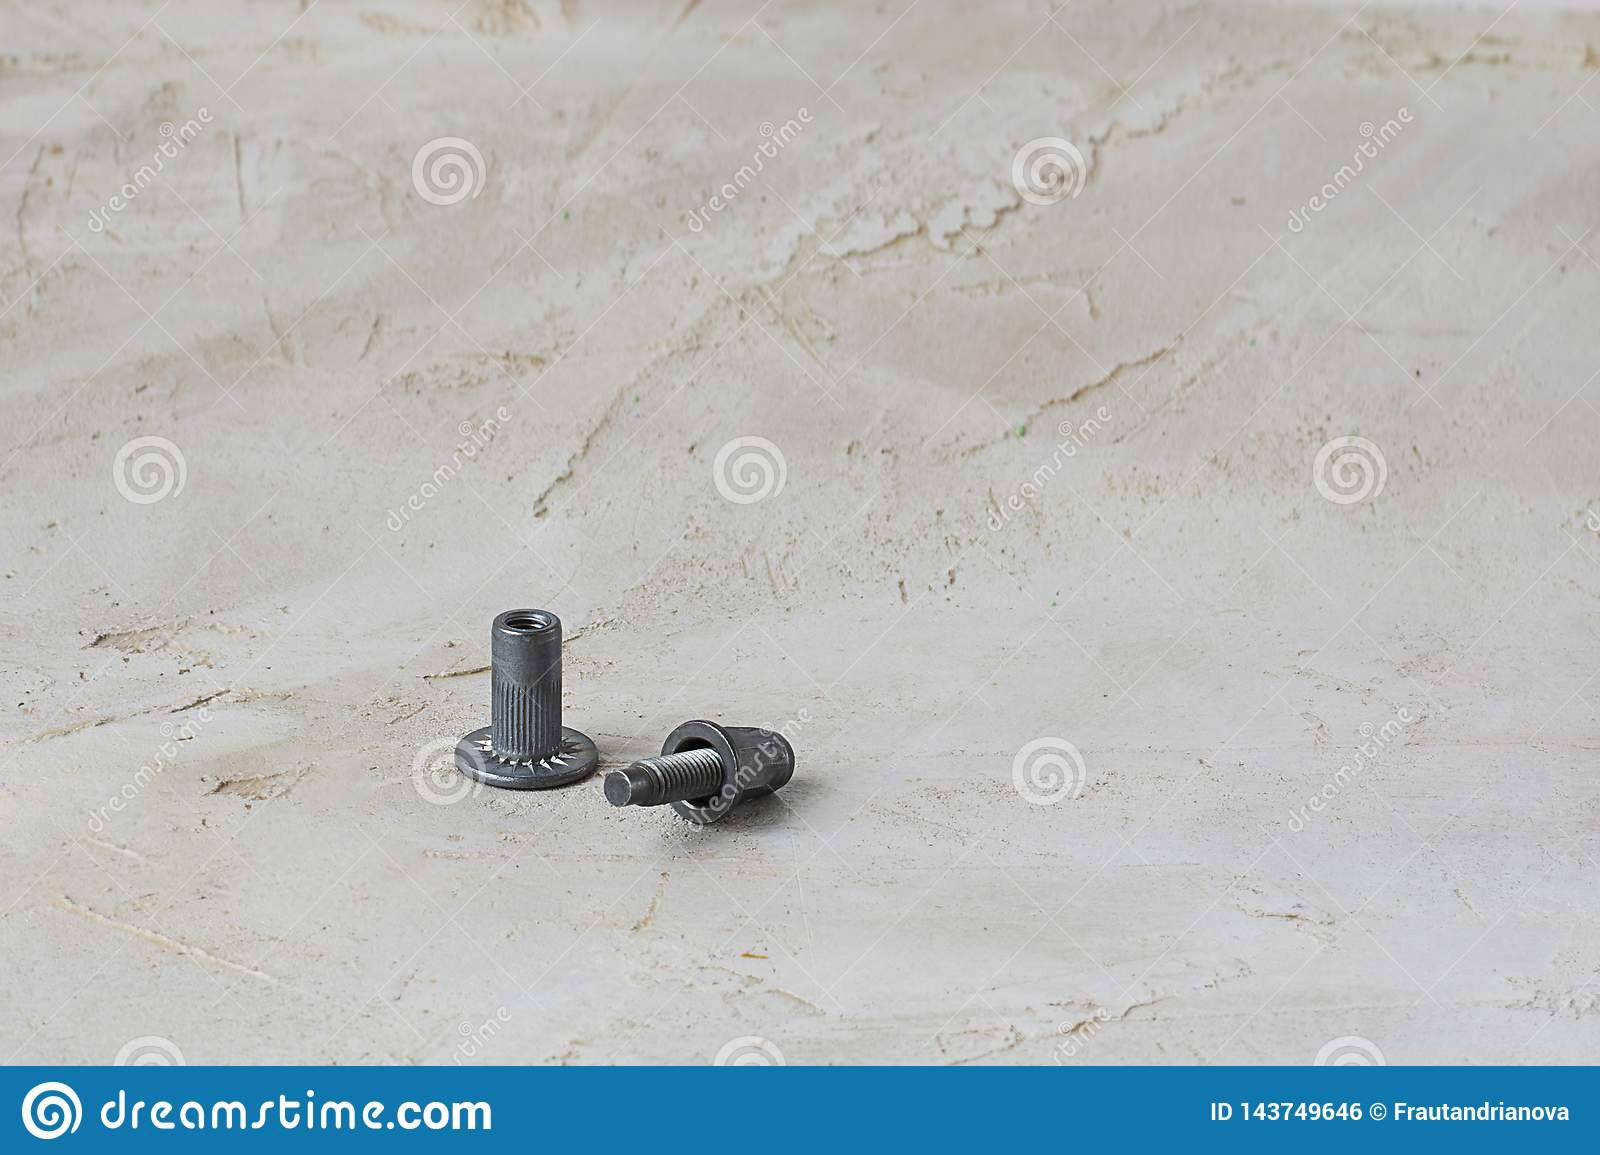 Two parts of metal pop Rivet fastener on grey cement background. Horizontal with copy space for text and design. Ingeneering